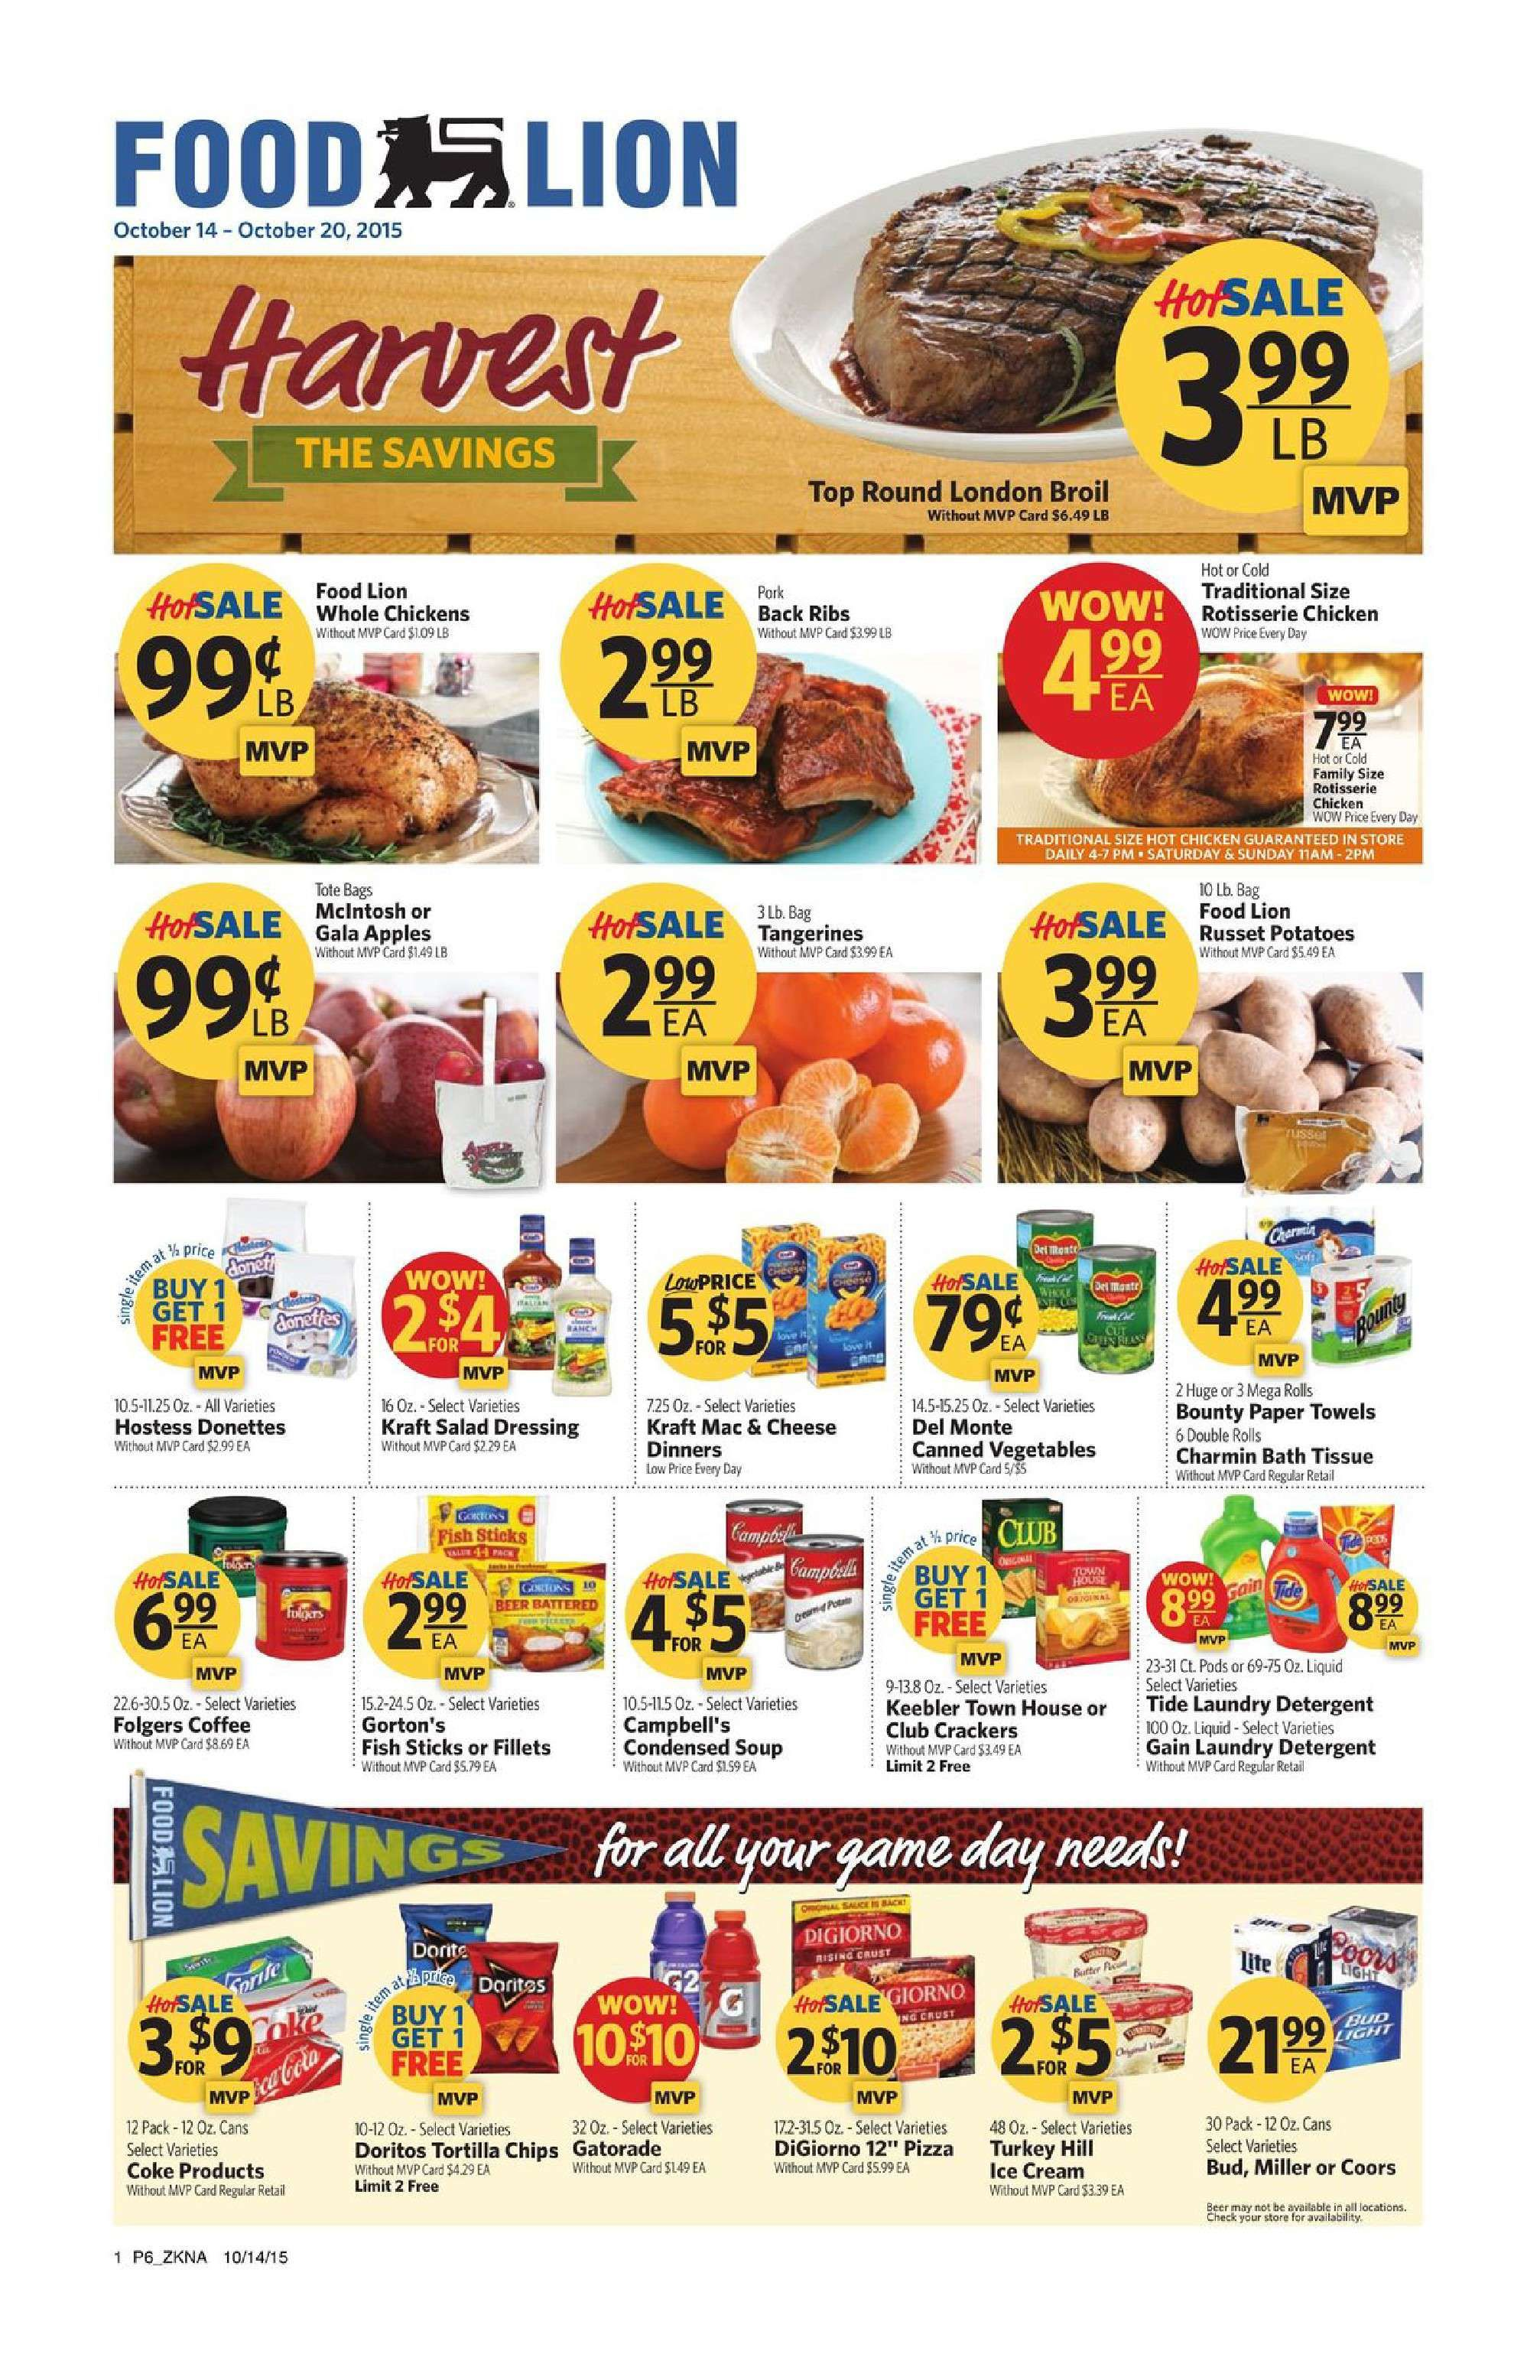 Food Lion Weekly Specials Food